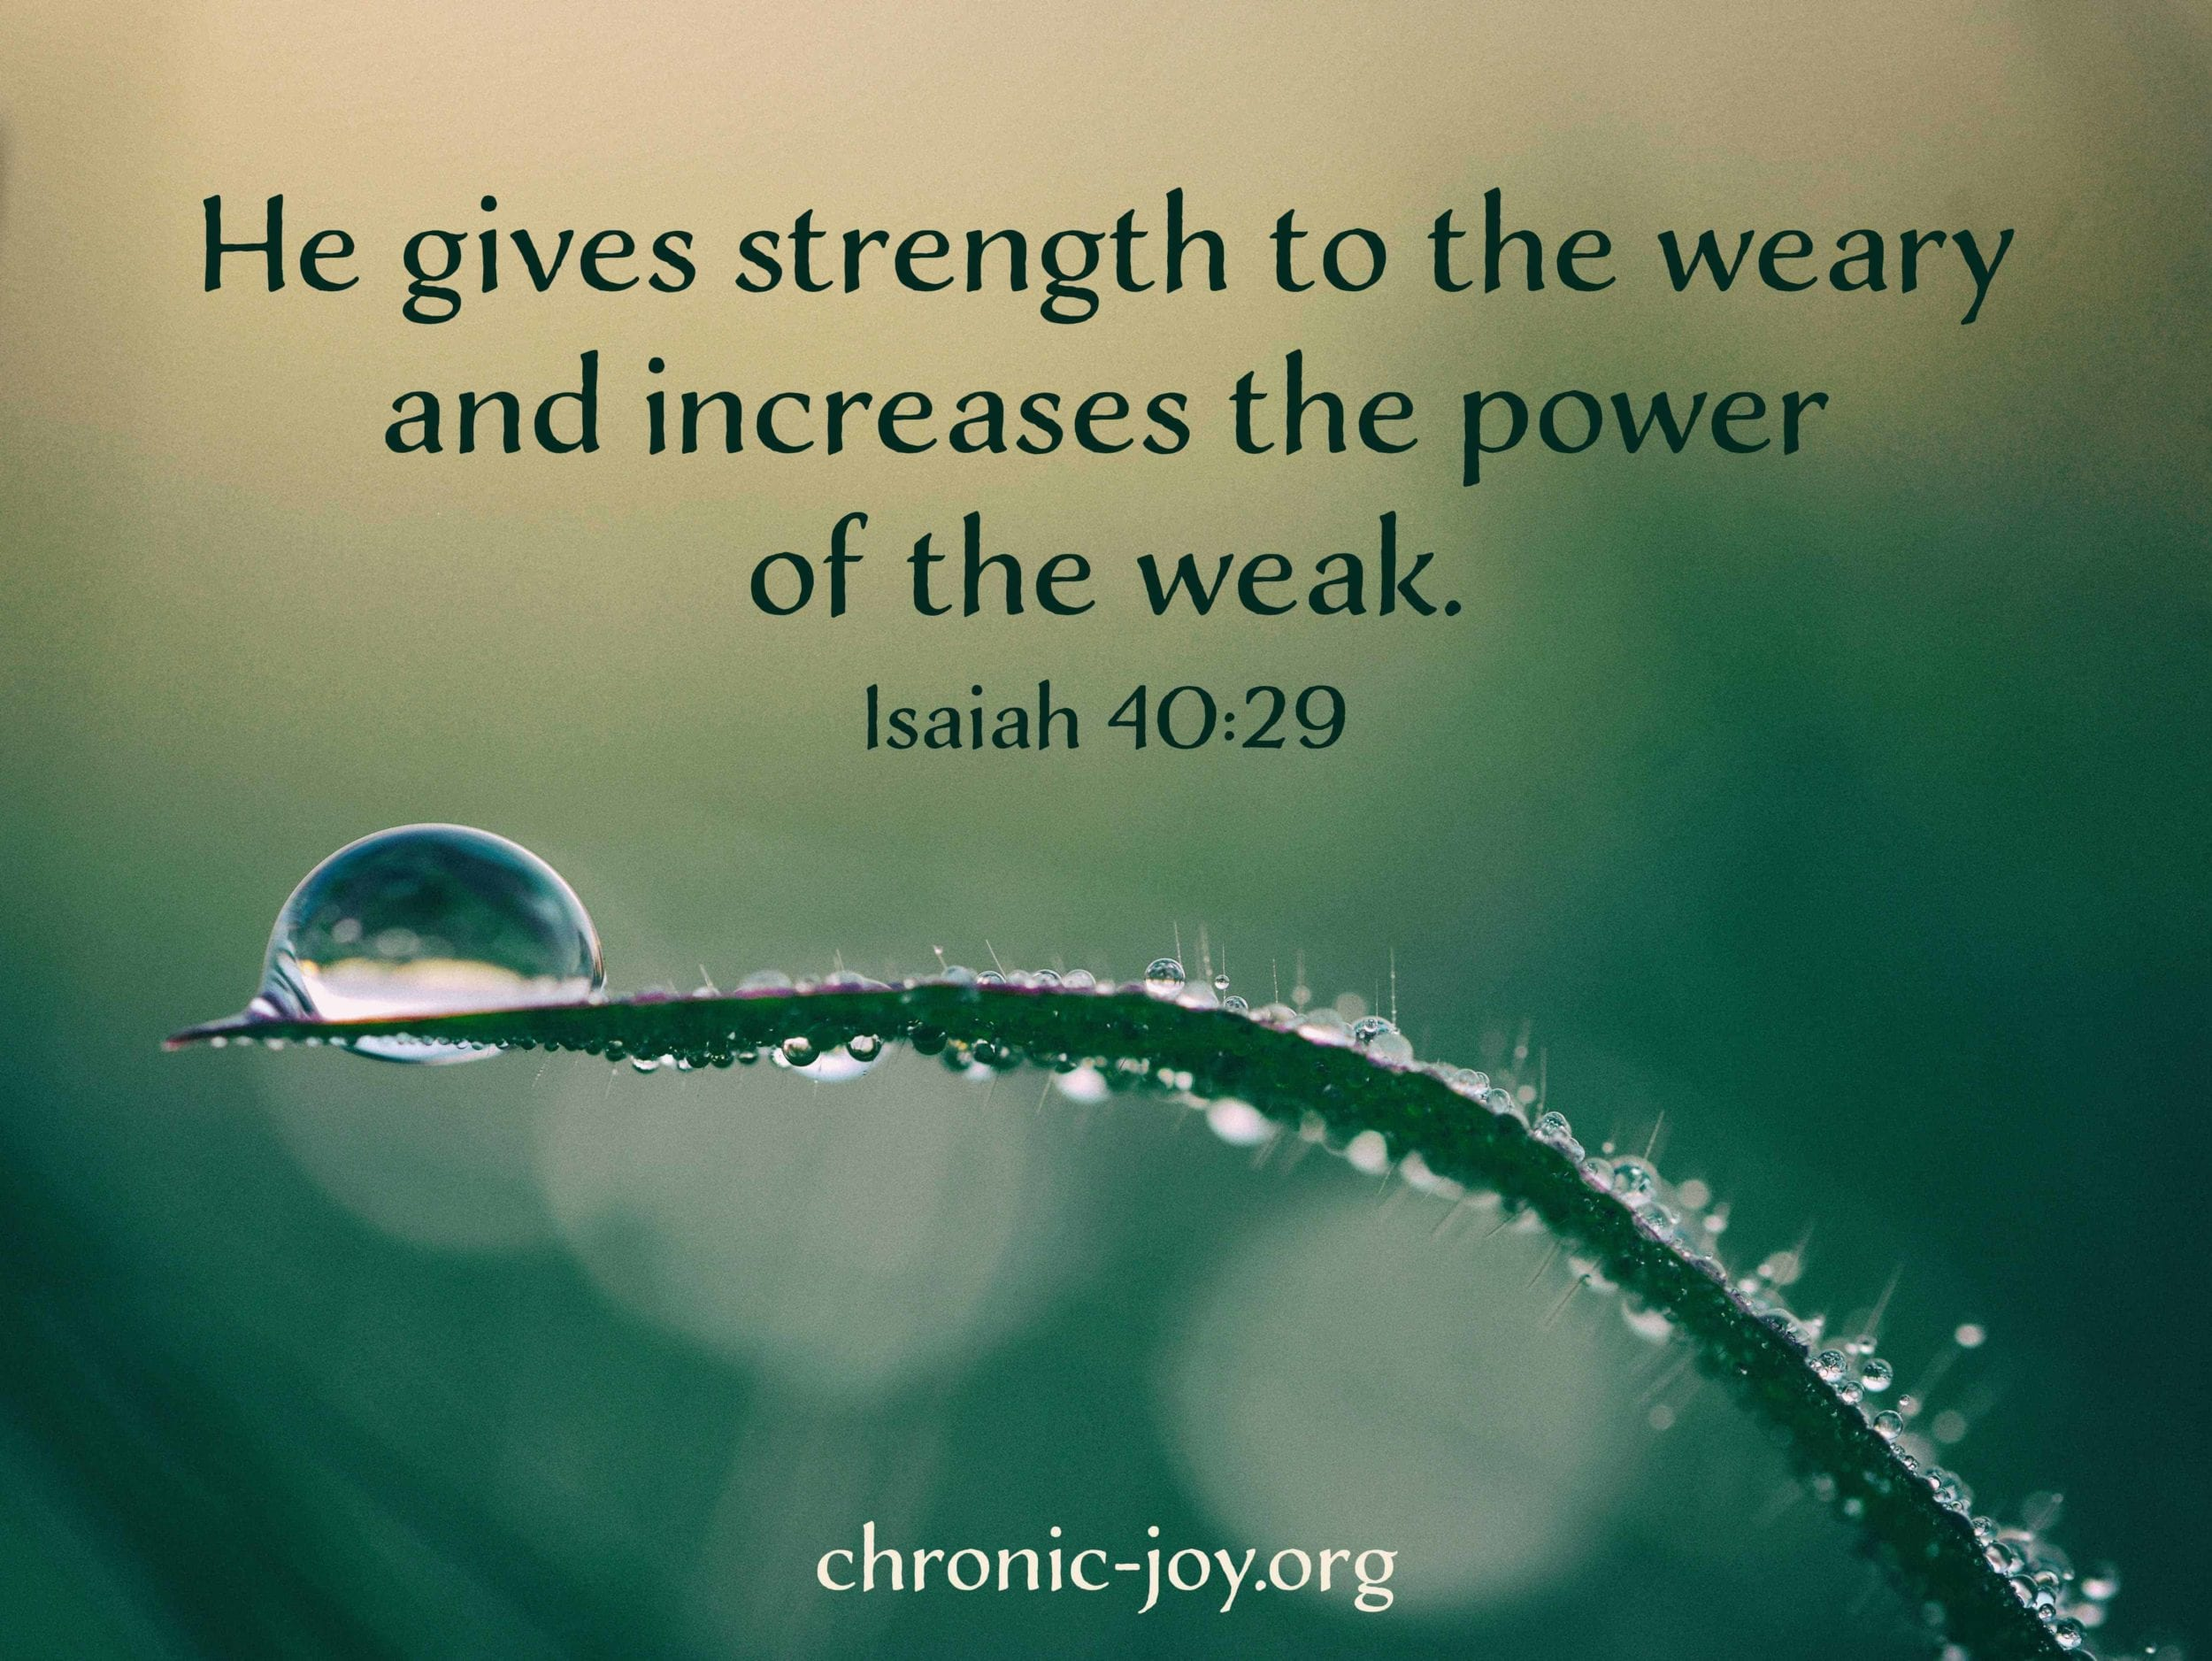 He gives strength to the weary...